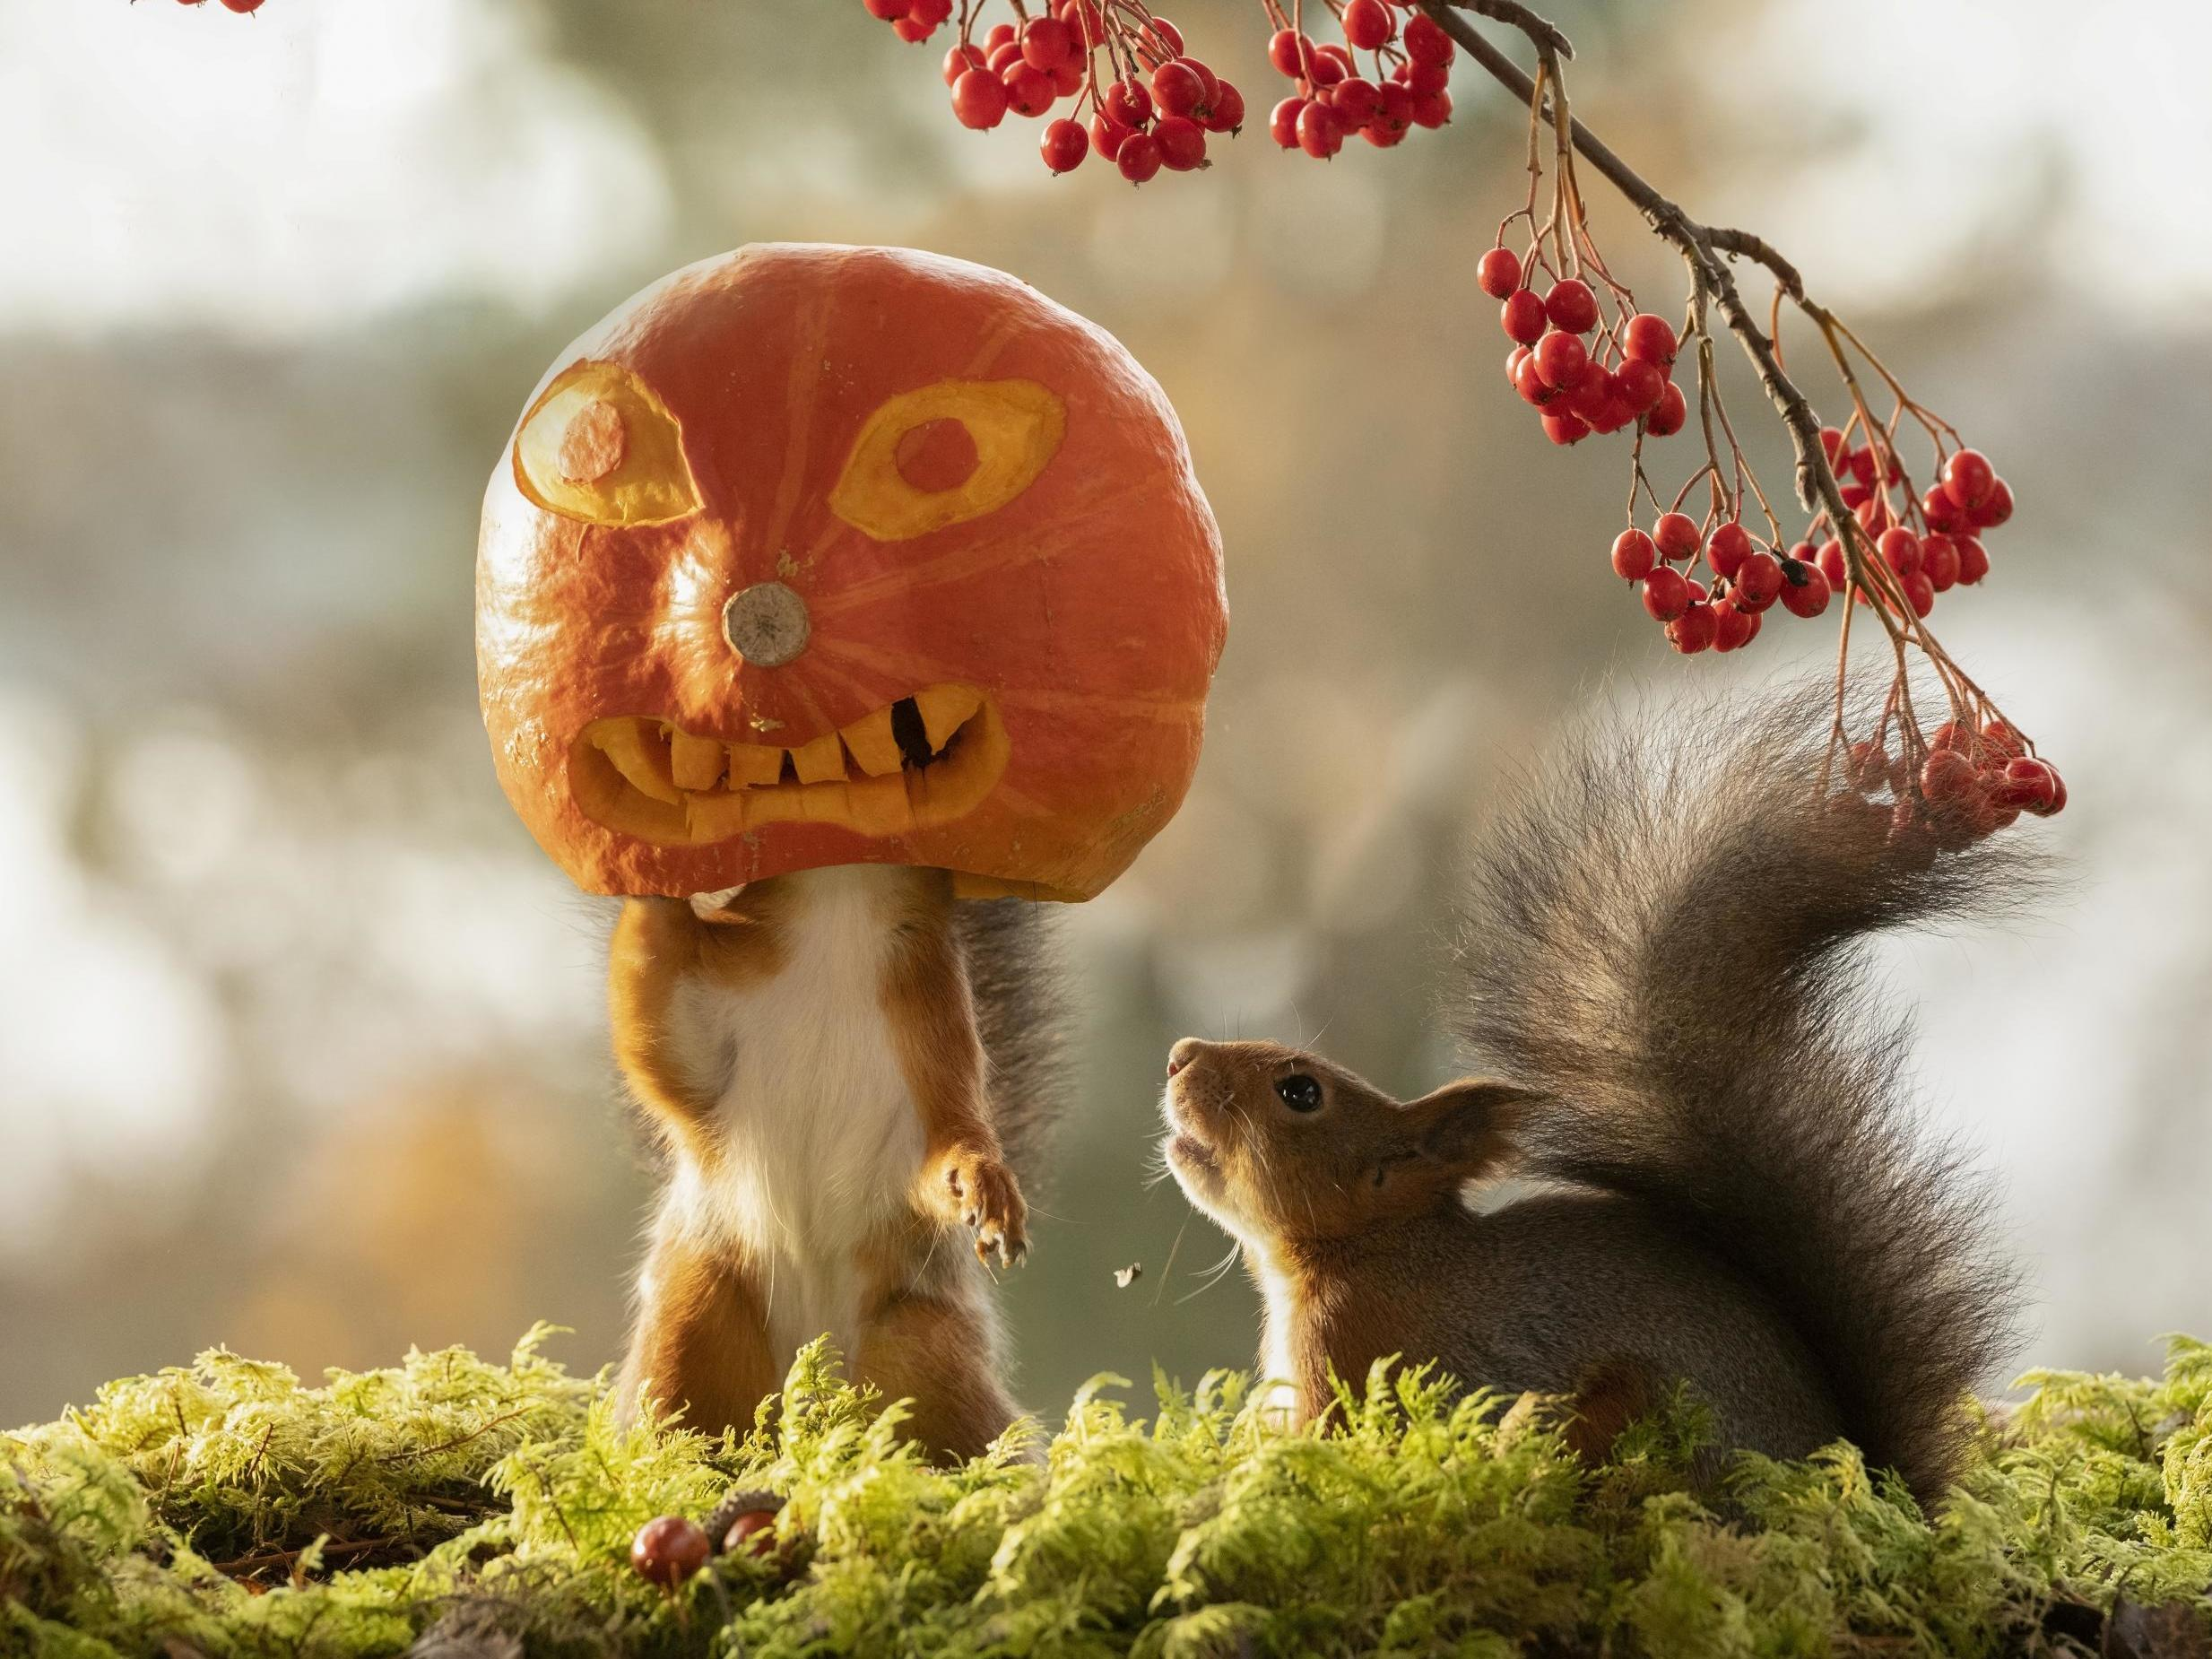 Squirrels seen playing with Halloween pumpkins in incredible wildlife photography